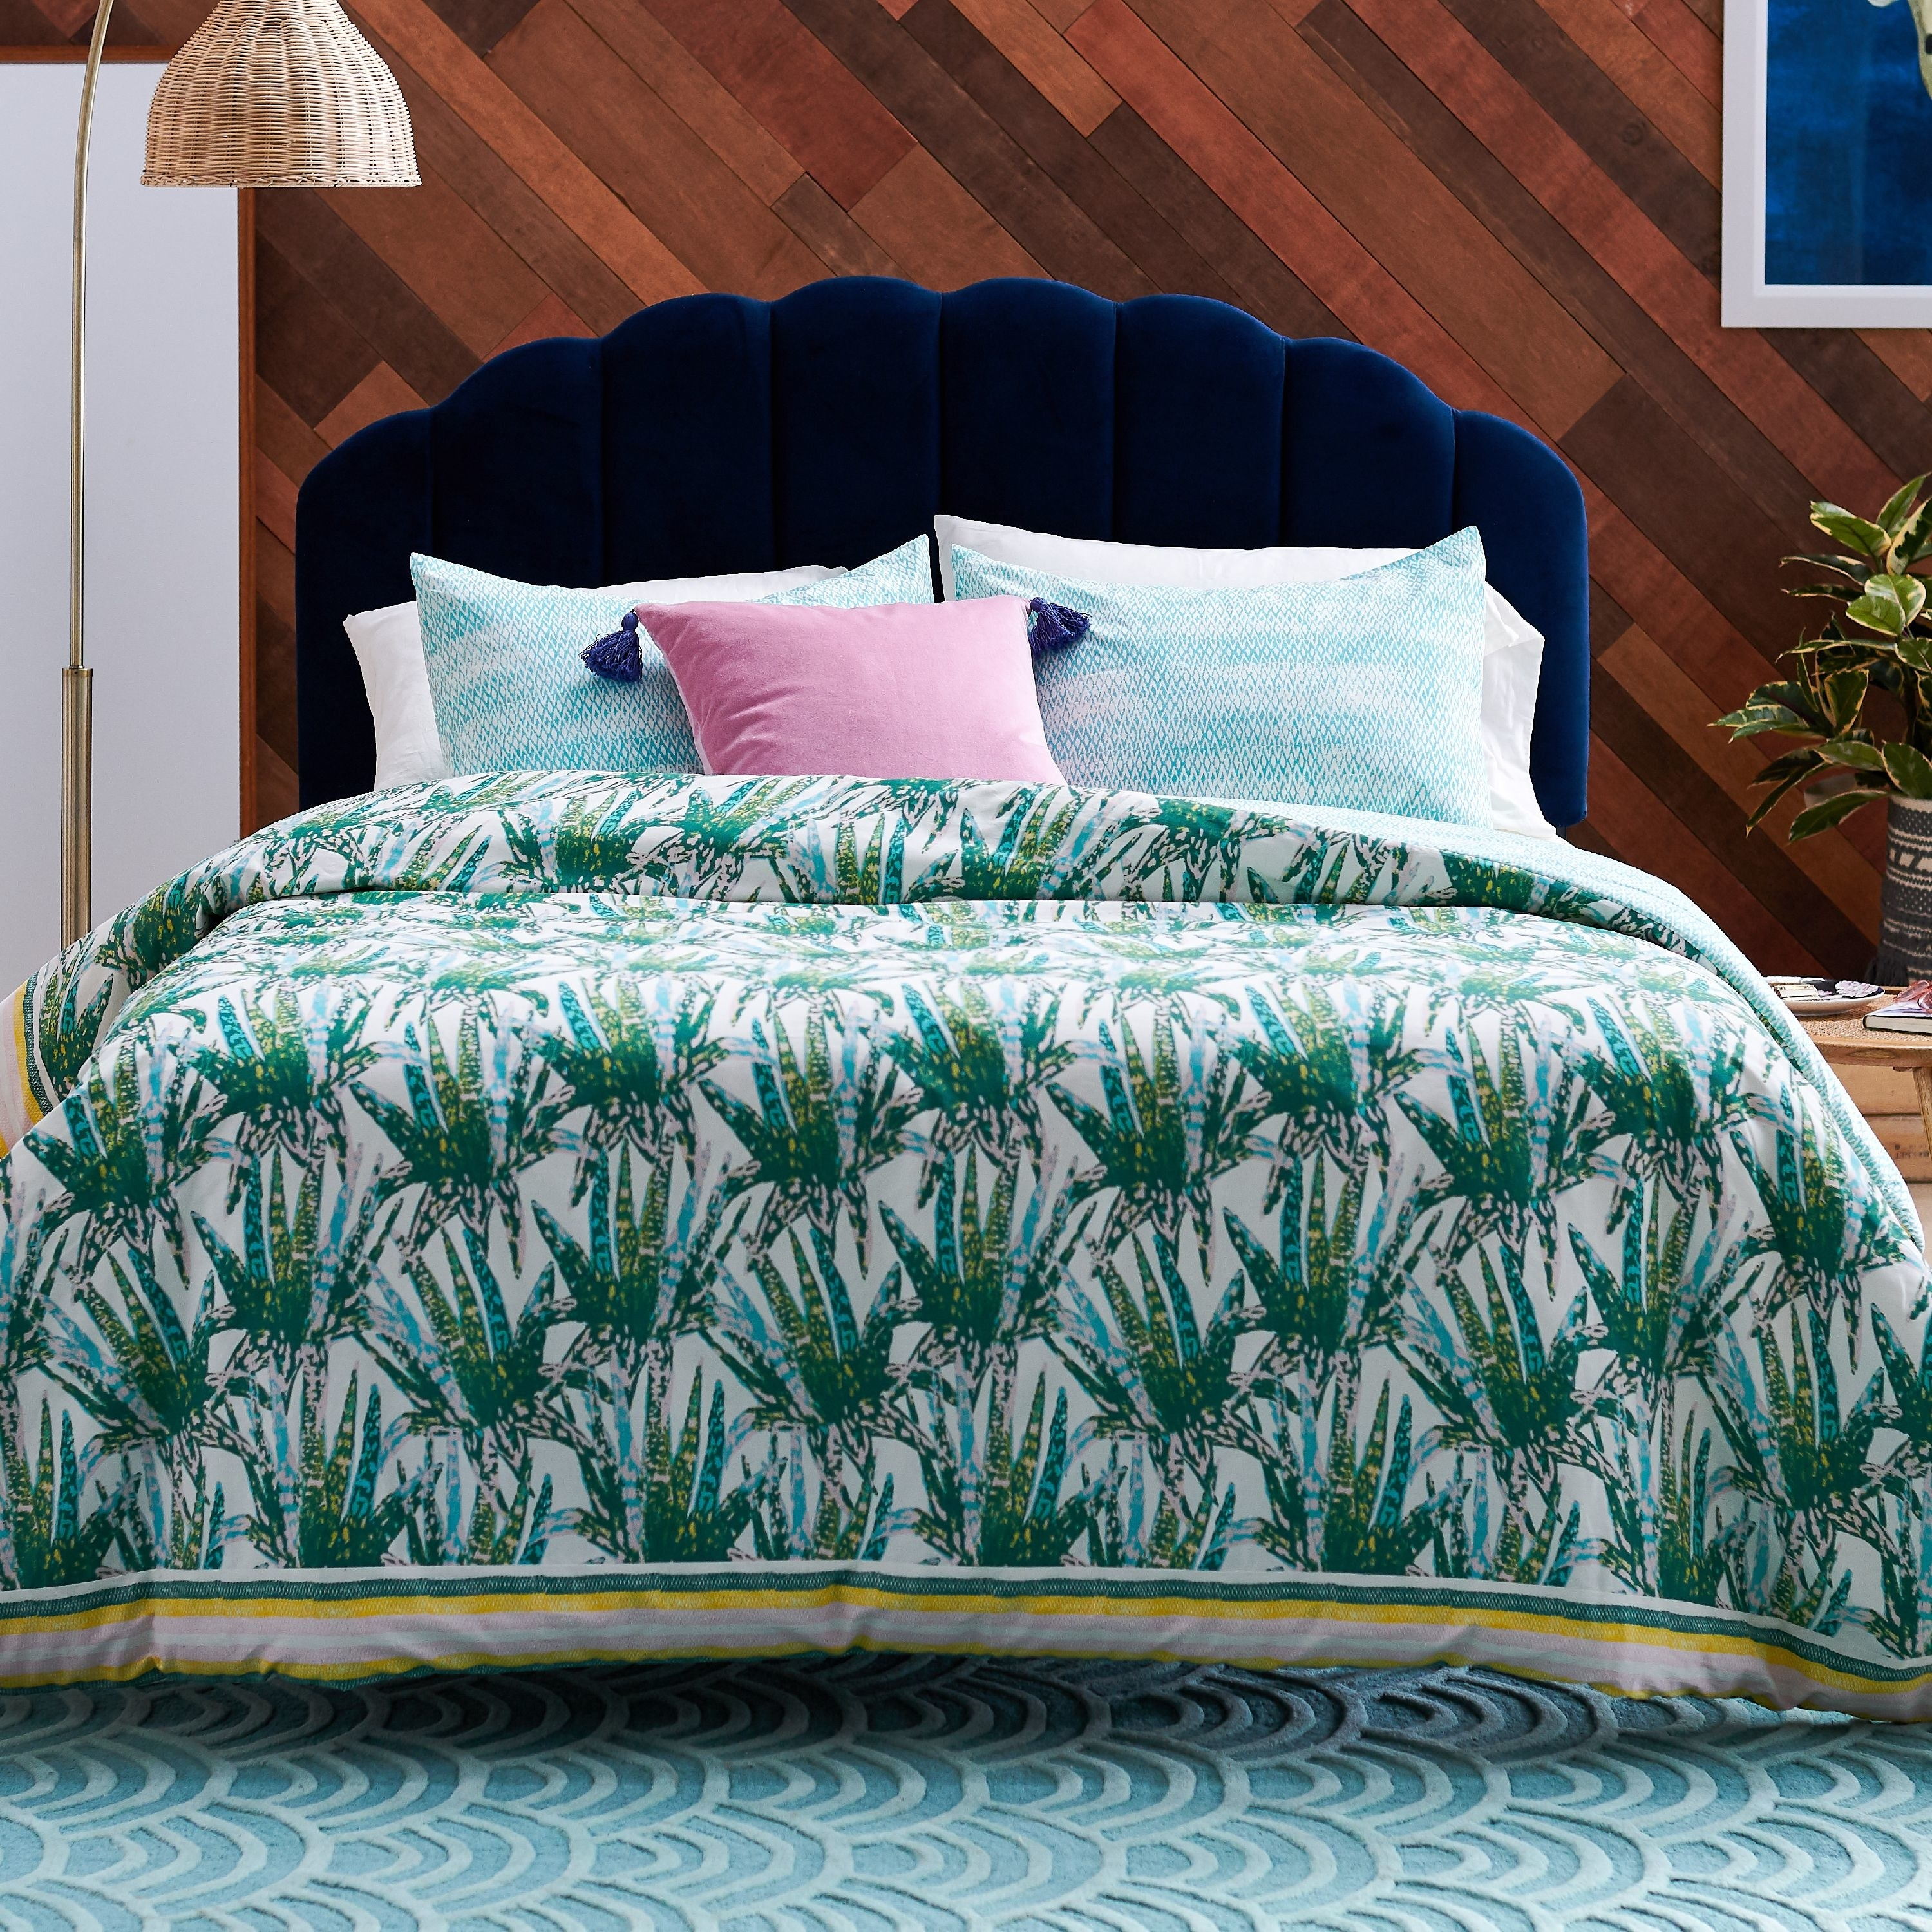 The comforter with a green and blue succulent illustration all over it on a bed with assorted pillows